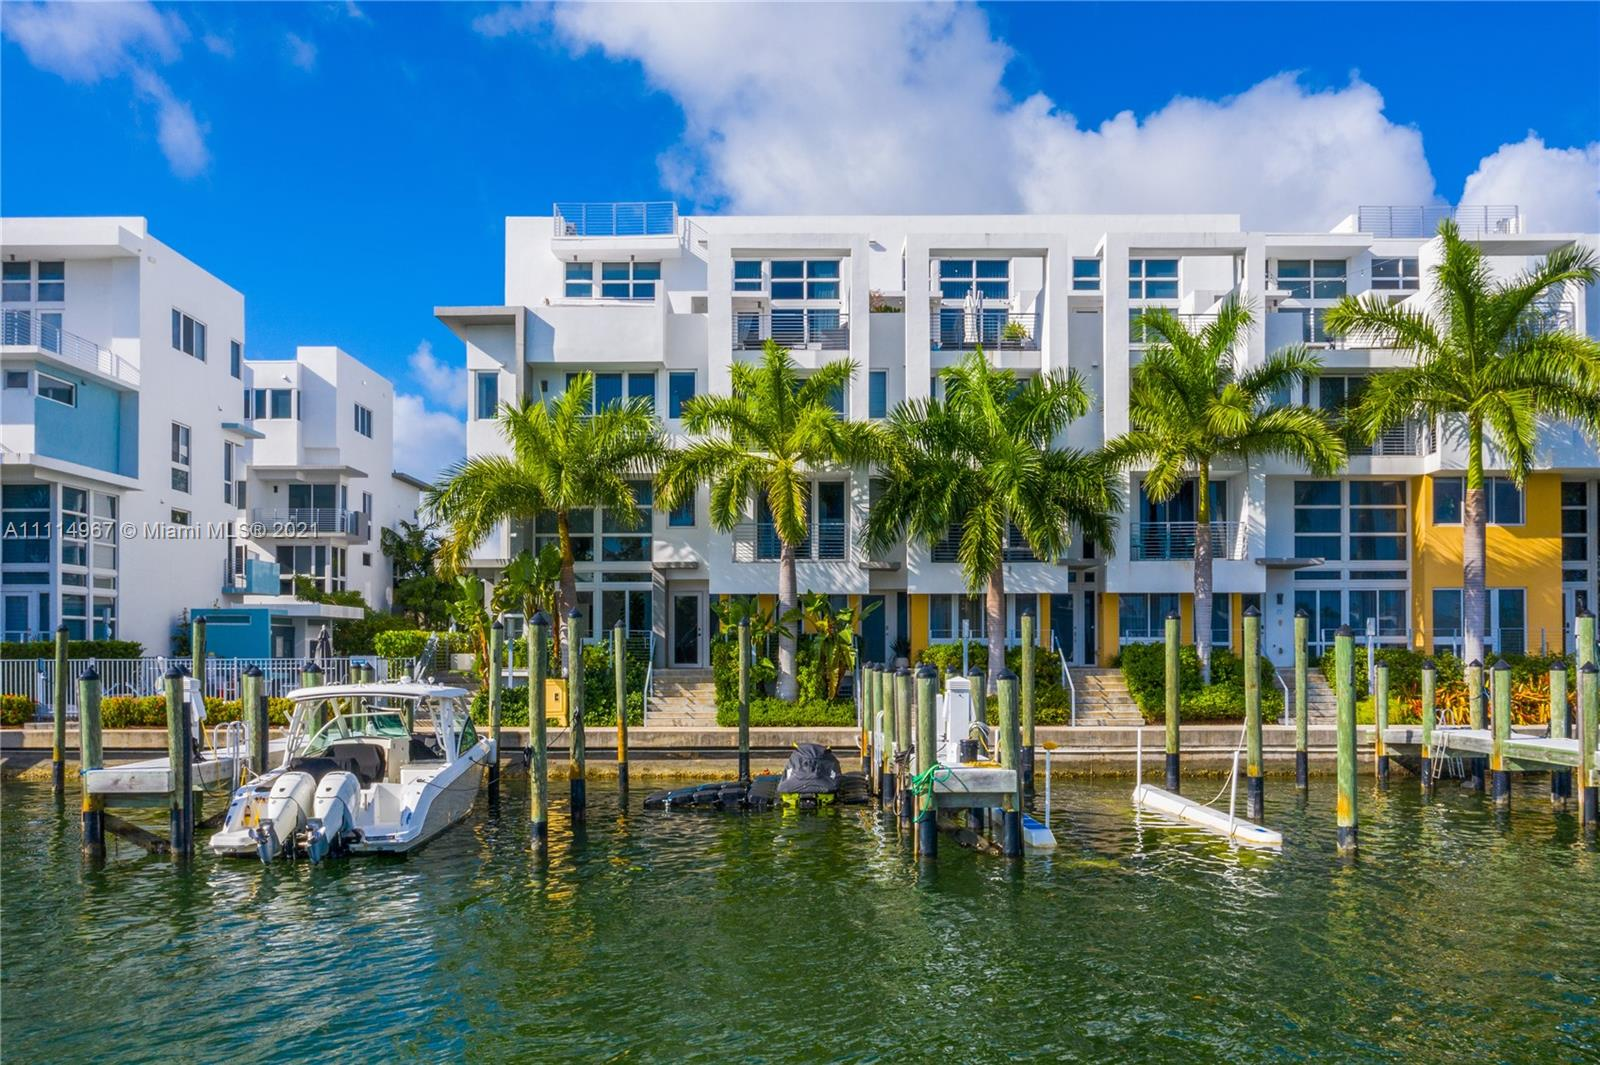 Live the Miami dream in this beautiful 4 story waterfront townhouse. Located in Iris On The Bay featuring 4 bedrooms with private balconies, 4.5 bathrooms, private elevator, modern European kitchen, laundry room, rooftop terrace with outdoor kitchen, and spacious 2 car garage. Water access is only within a few steps from your door for all your boating and water sports needs. The bedrooms are well laid out and split with the master suite on the 4th floor. The private elevator provides amazing convenience for all floors within the home. The property is located a few blocks from beach, across from normandy golf course, tennis courts, children's playground, soccer field, restaurants, and shopping.